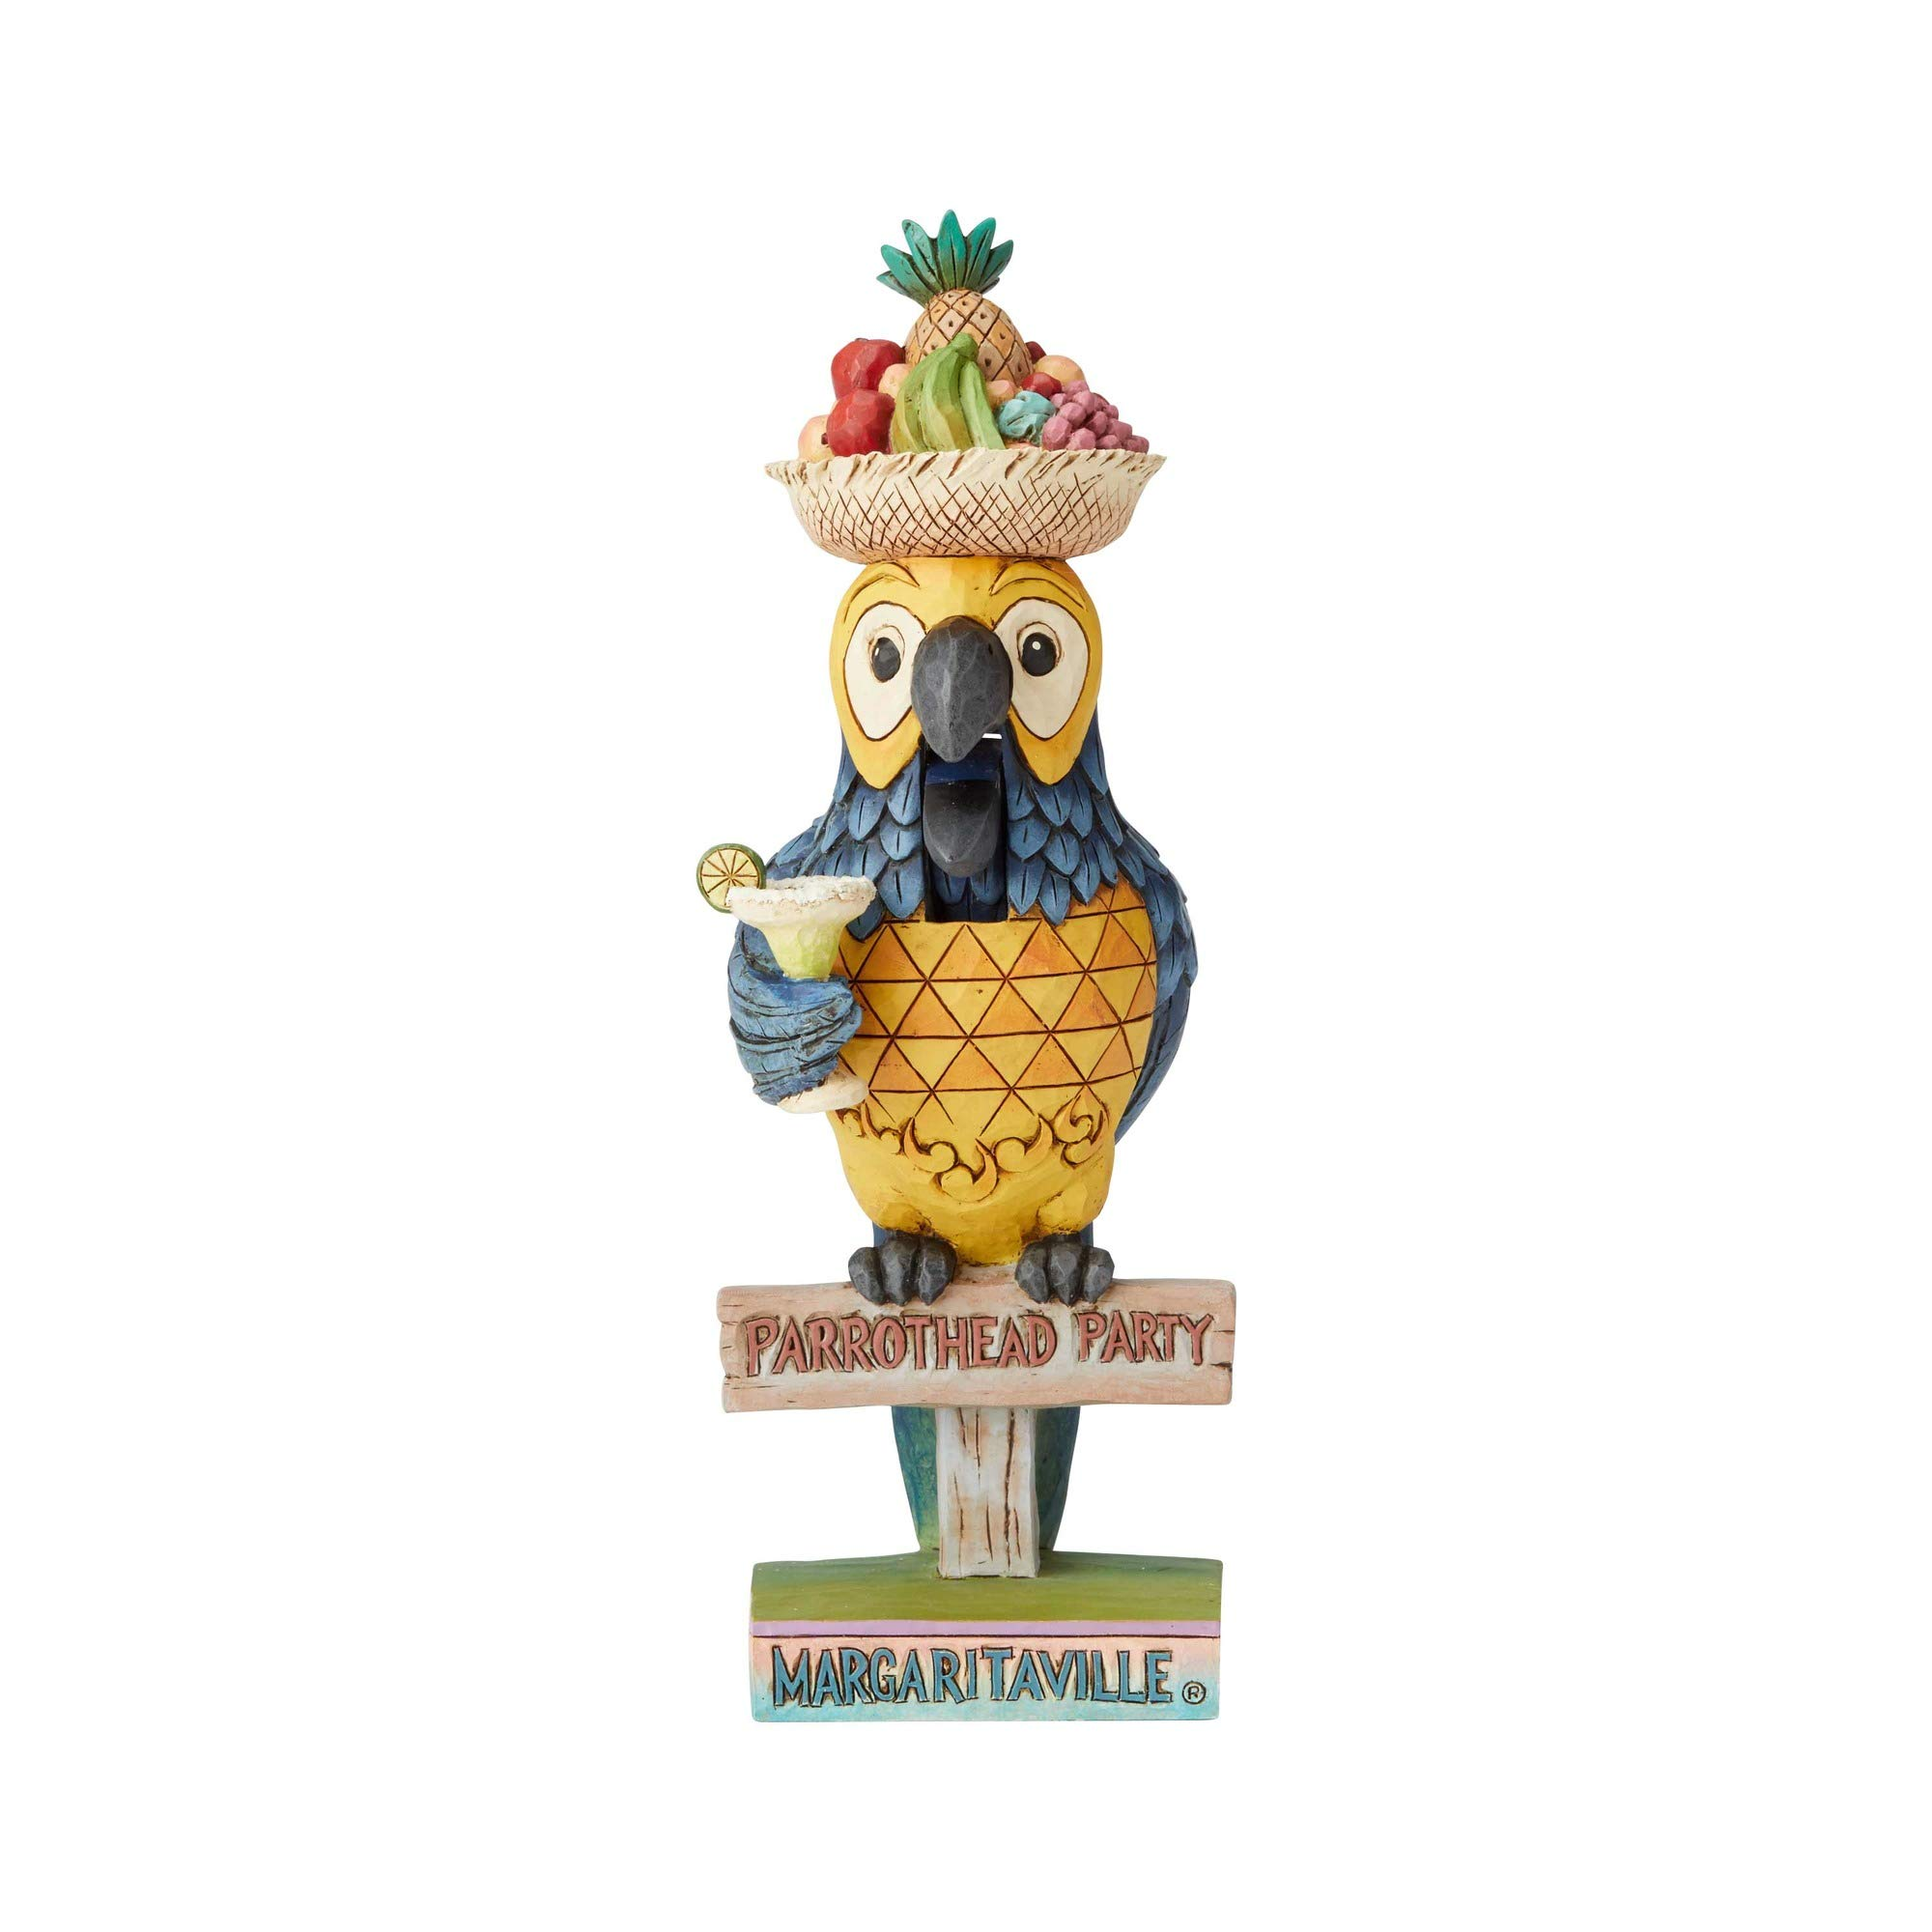 Enesco Margaritaville by Jim Shore Parrot Nutcracker Figurine, 8.5''